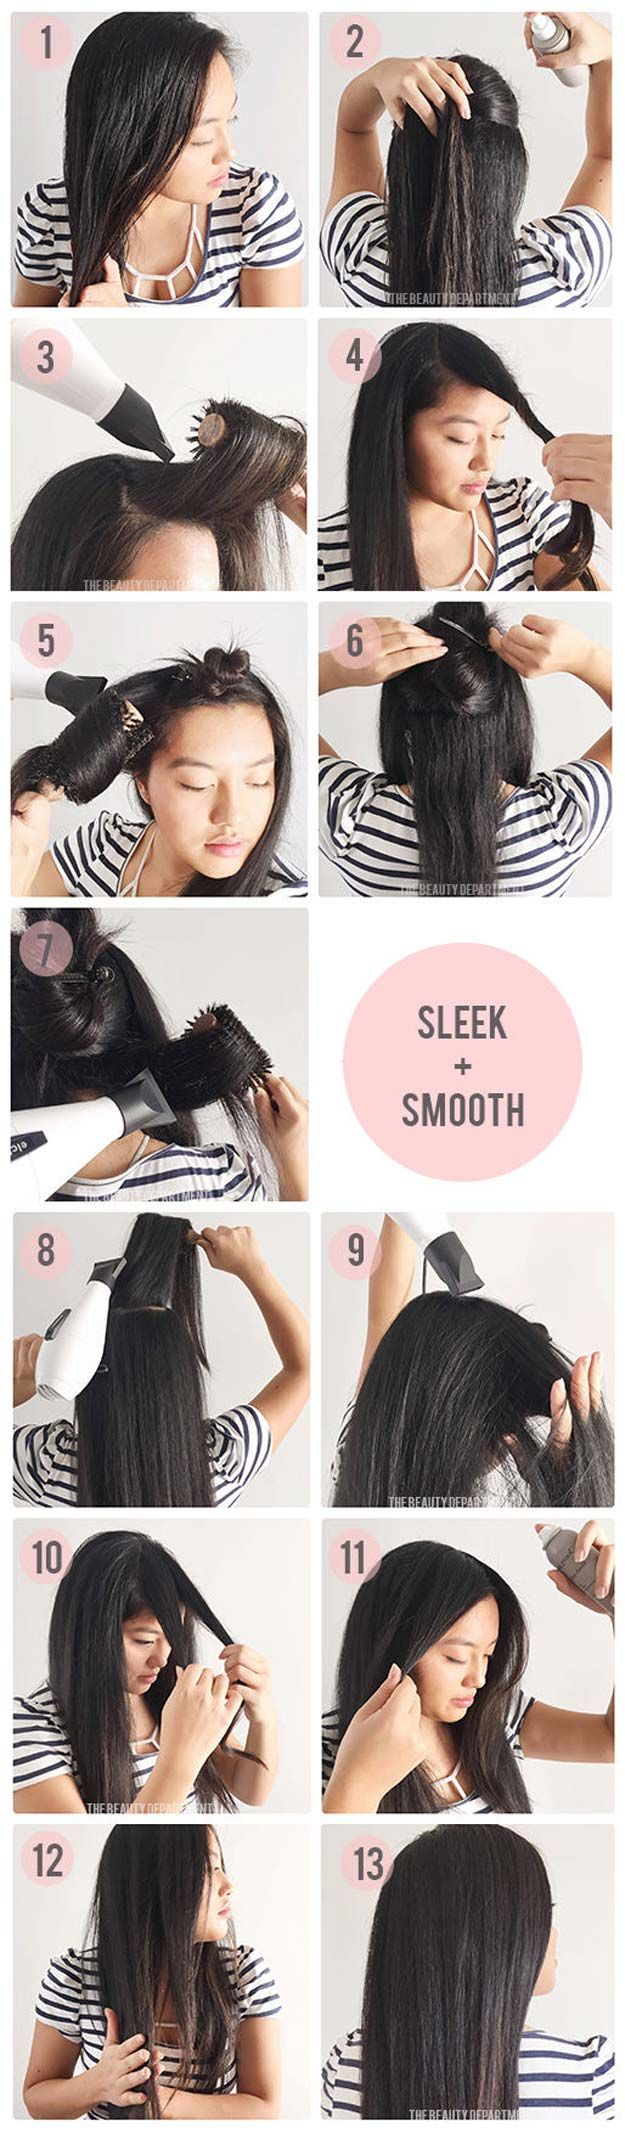 Hair Straightening Tutorials - Long-Lasting Frizz Control Blow-Dry -Looking For The Best Hair Straightening Tutorials And The Best Straightening Tips On The Web? Whether You Are Looking To Use A Flat Iron, Or Trying To Straighten Your Hair Without Heat, Where There's A Will, There's A Way, And There Are Products To Help Your Curls. These Step By Step Hair Straightening Hacks And Tips Will Make It So You Can DIY Your Hair With Some Simple Techniques, A Brush, And Your Creativity. We Cover…